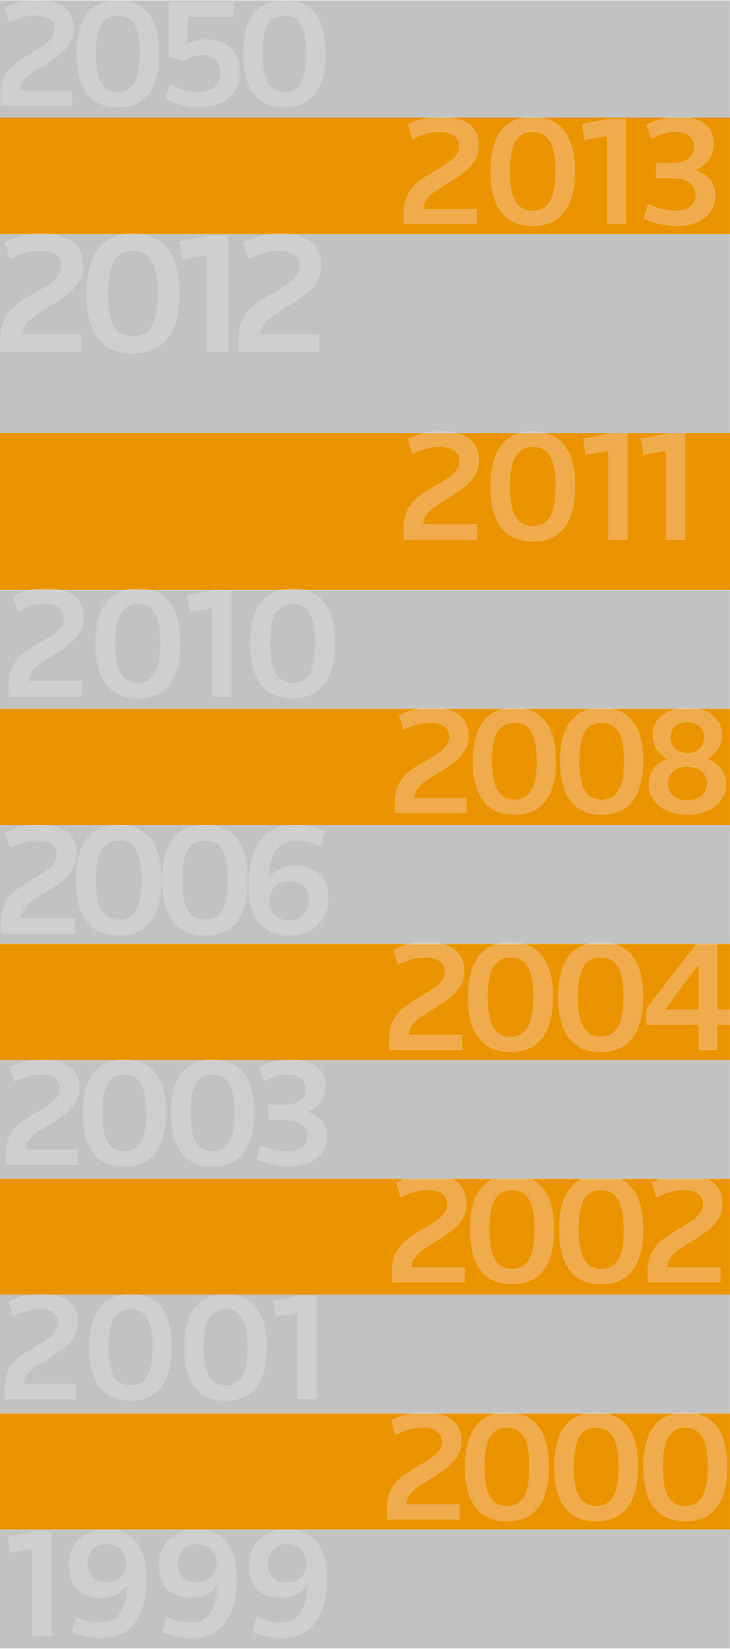 Thomson Reuters Web and Mobile Timeline